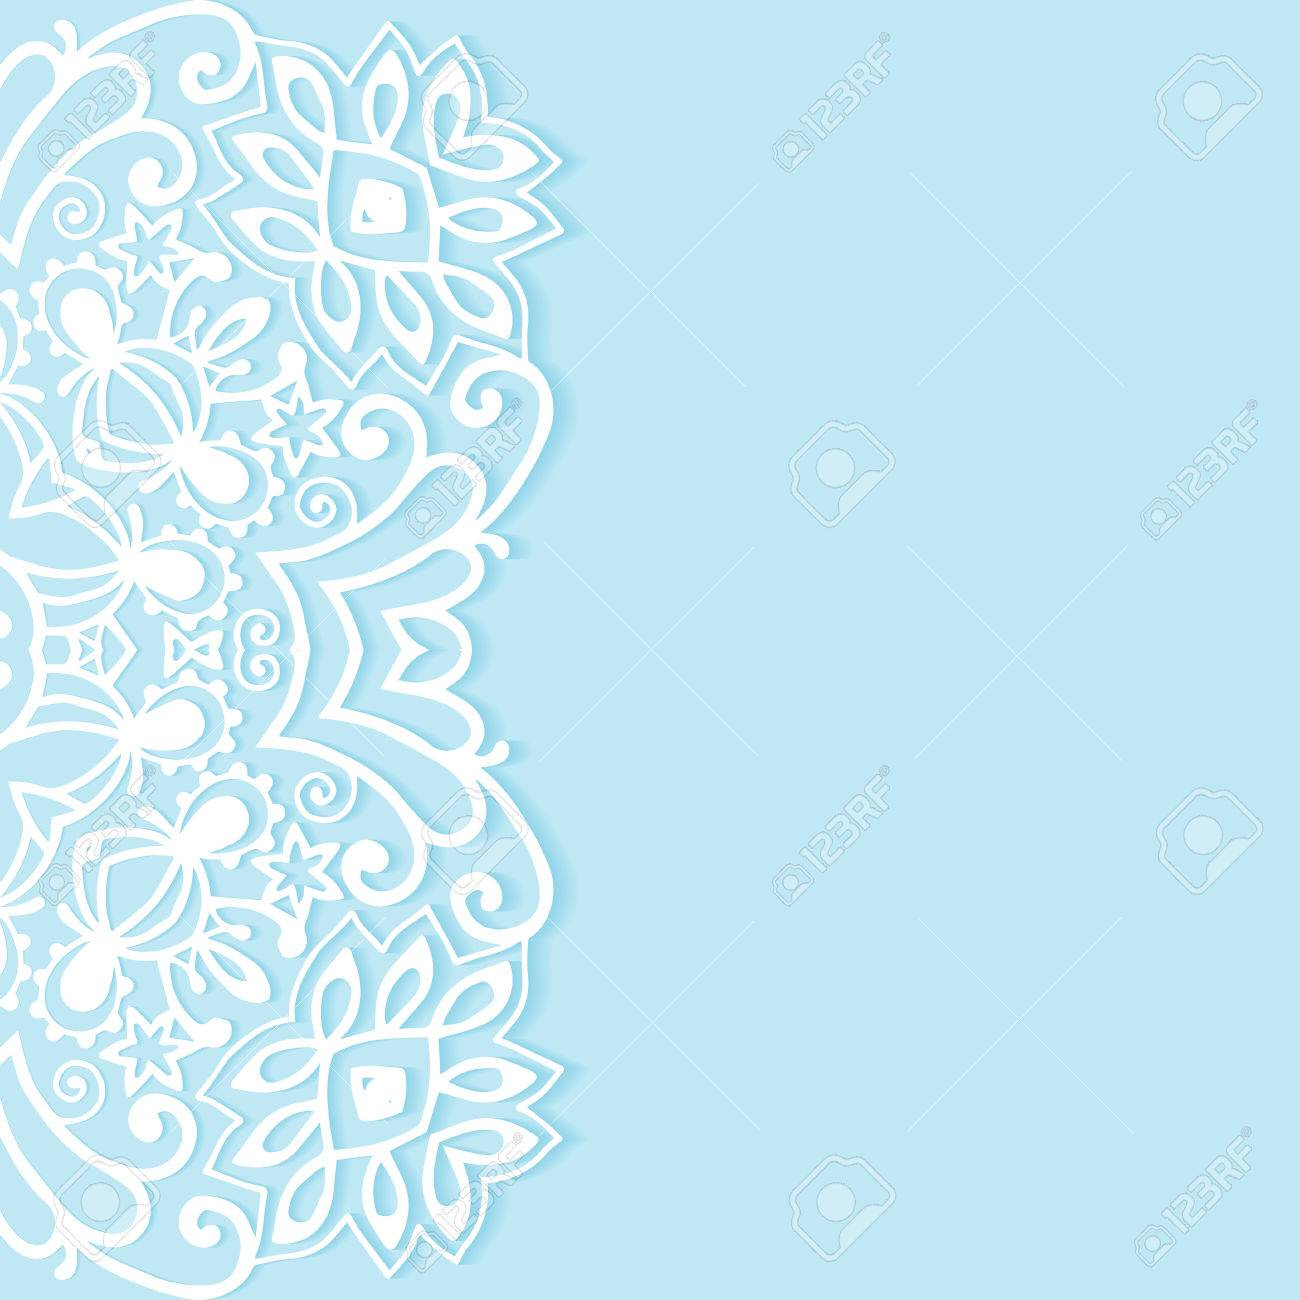 Decorative Abstract Background Wedding Invitation Or Greeting